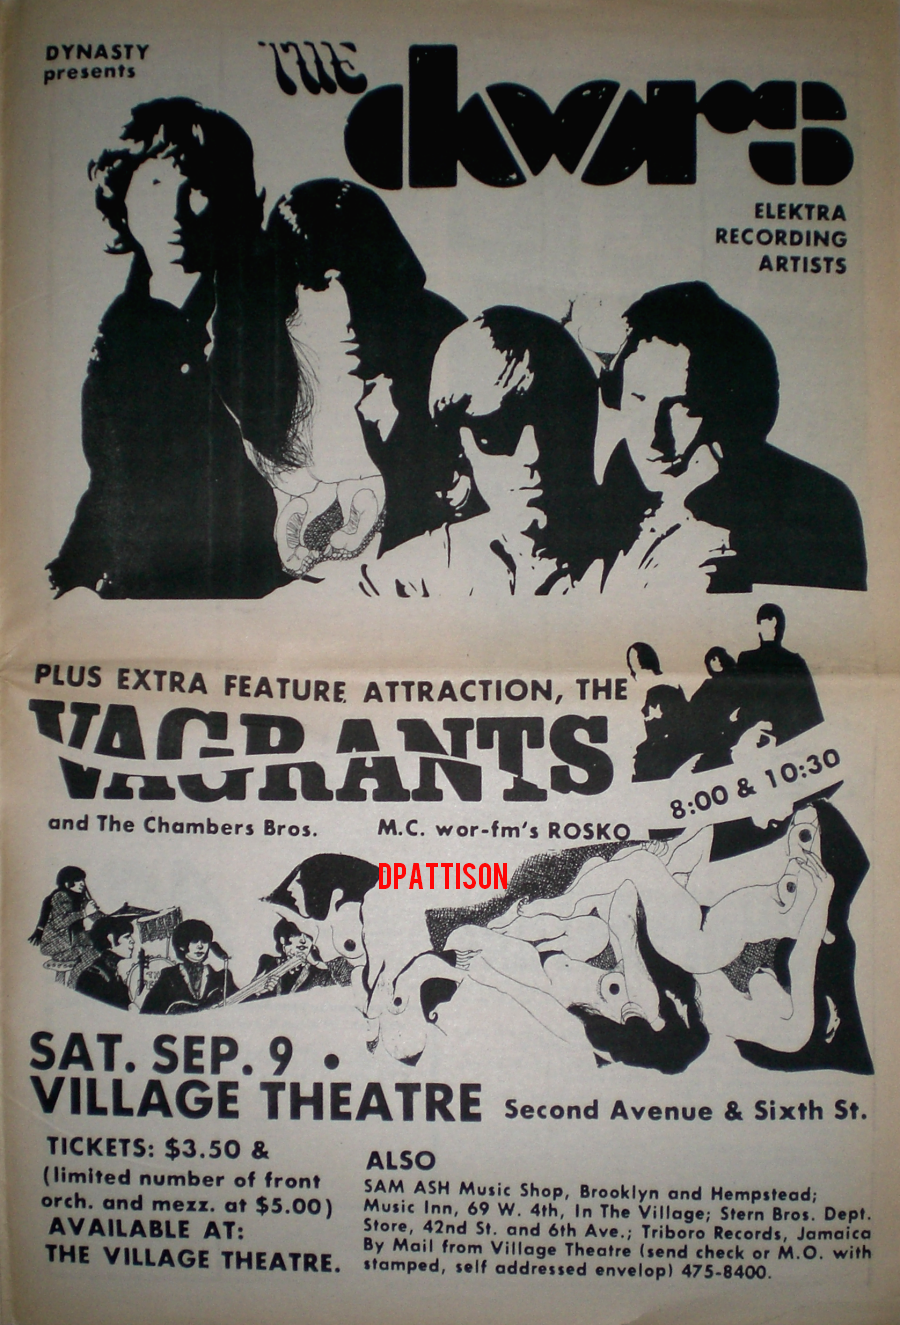 The Doors - Village Theater - Poster Ad